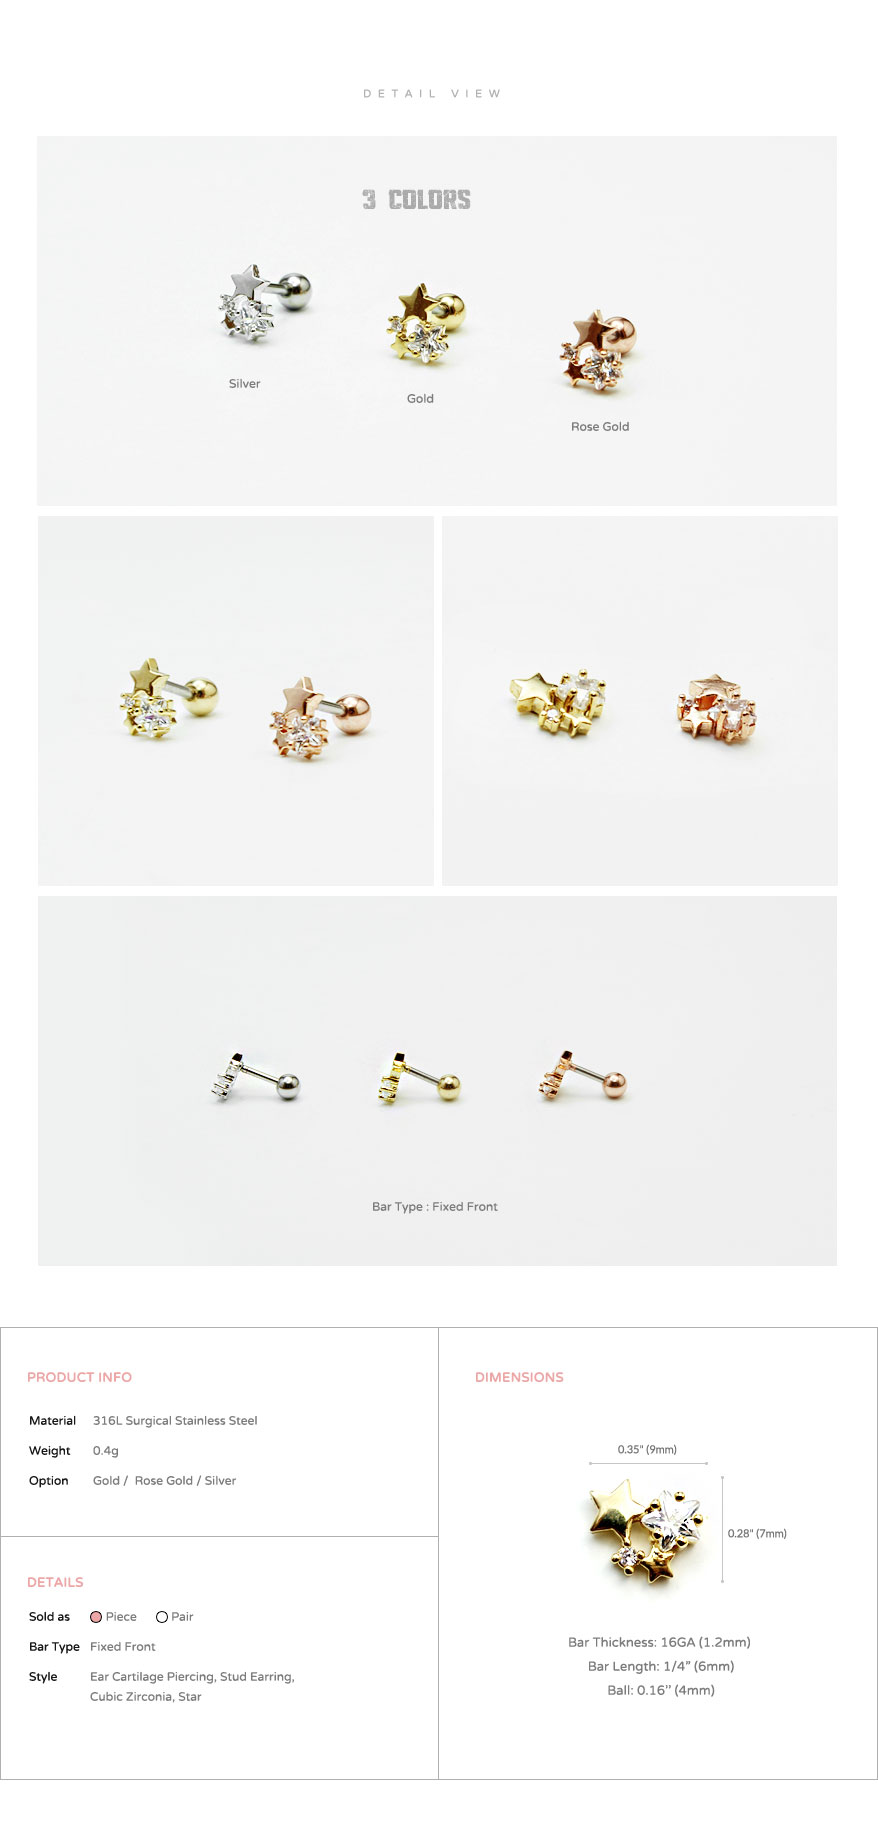 ear_studs_piercing_Cartilage_earrings_16g_316l_Surgical_Stainless_Steel_korean_asian_style_jewelry_barbell_cubic_zirconia_cz_star_4